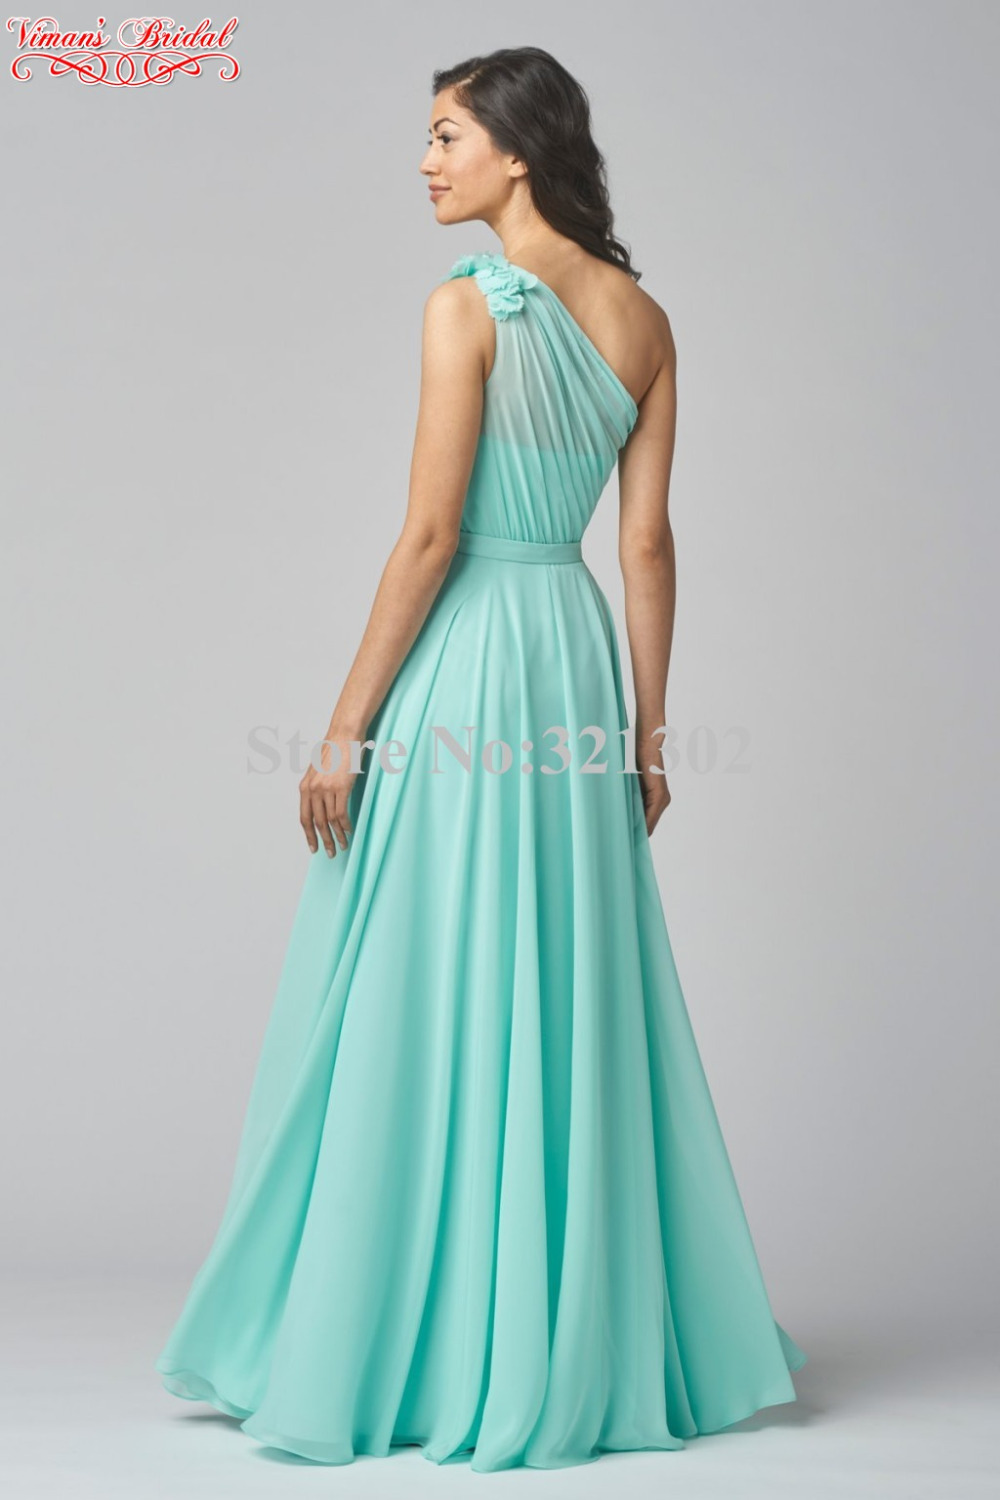 Aliexpress buy 2015 new style mint green bridesmaid dresses aliexpress buy 2015 new style mint green bridesmaid dresses pleat one shoulder floor length a line vestido de festa free shipping am13 from reliable ombrellifo Choice Image